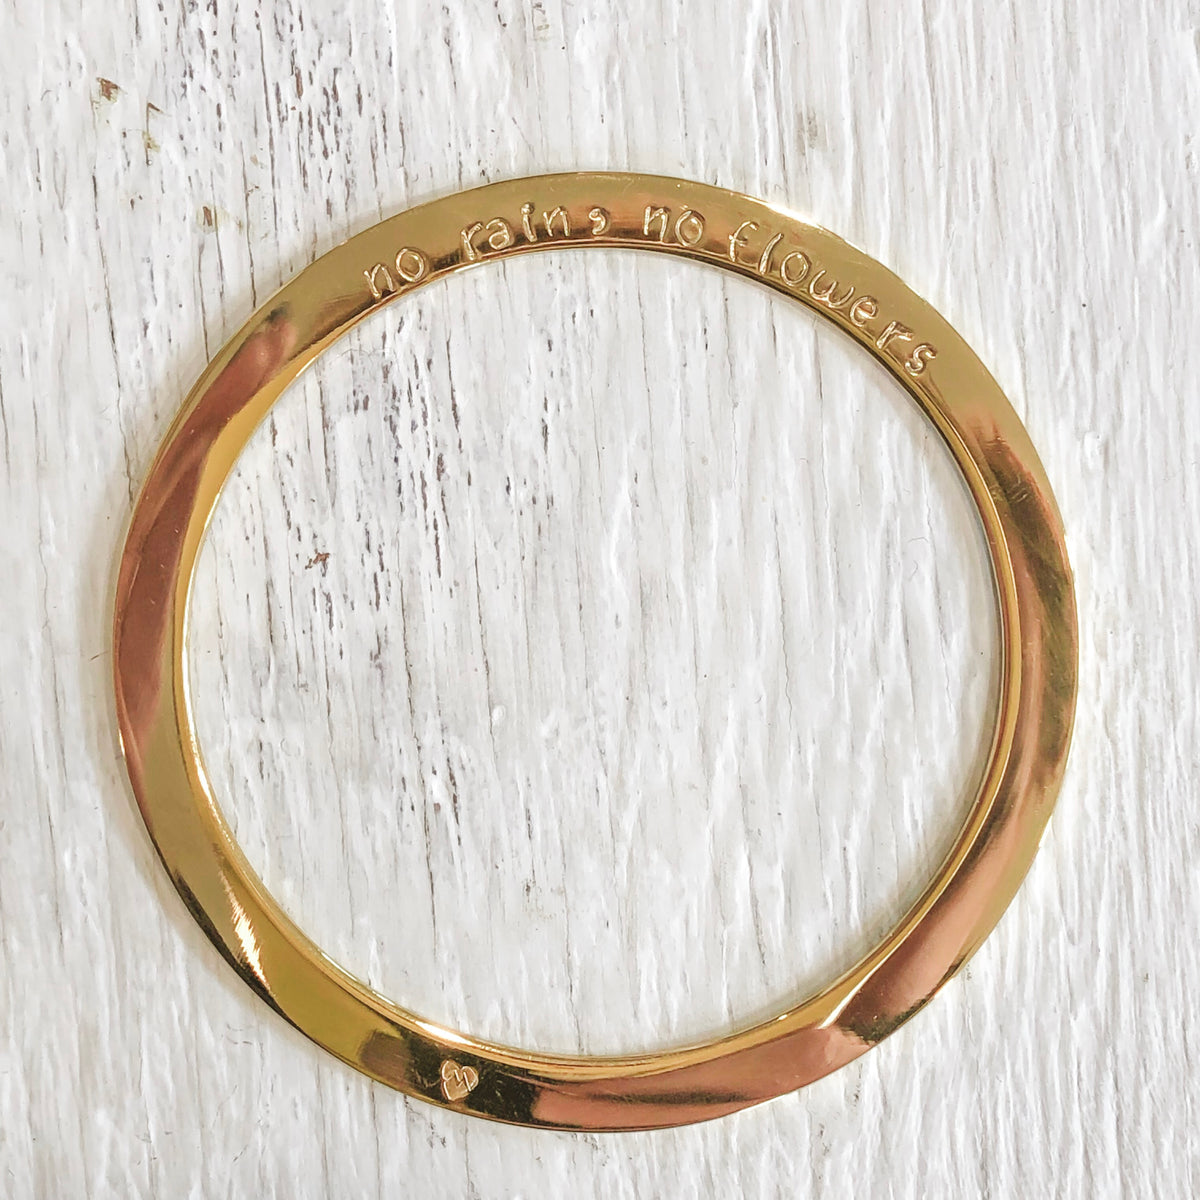 Handstamped Maya Bangle